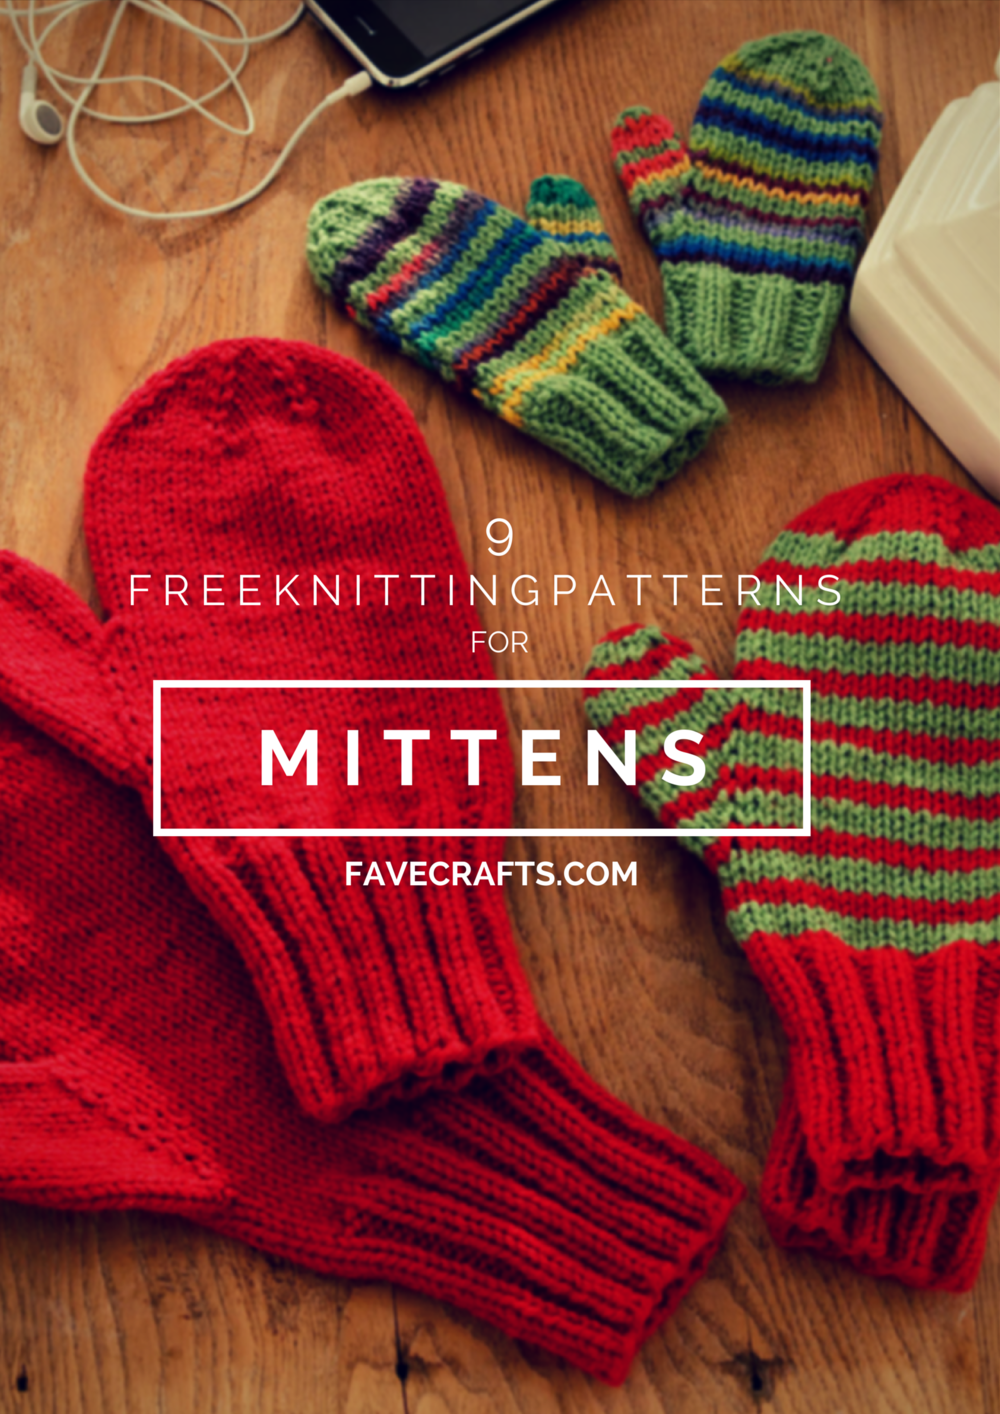 Free Knitting Patterns Hats Scarves Gloves : 6 Free Knitting Patterns for Mittens FaveCrafts.com